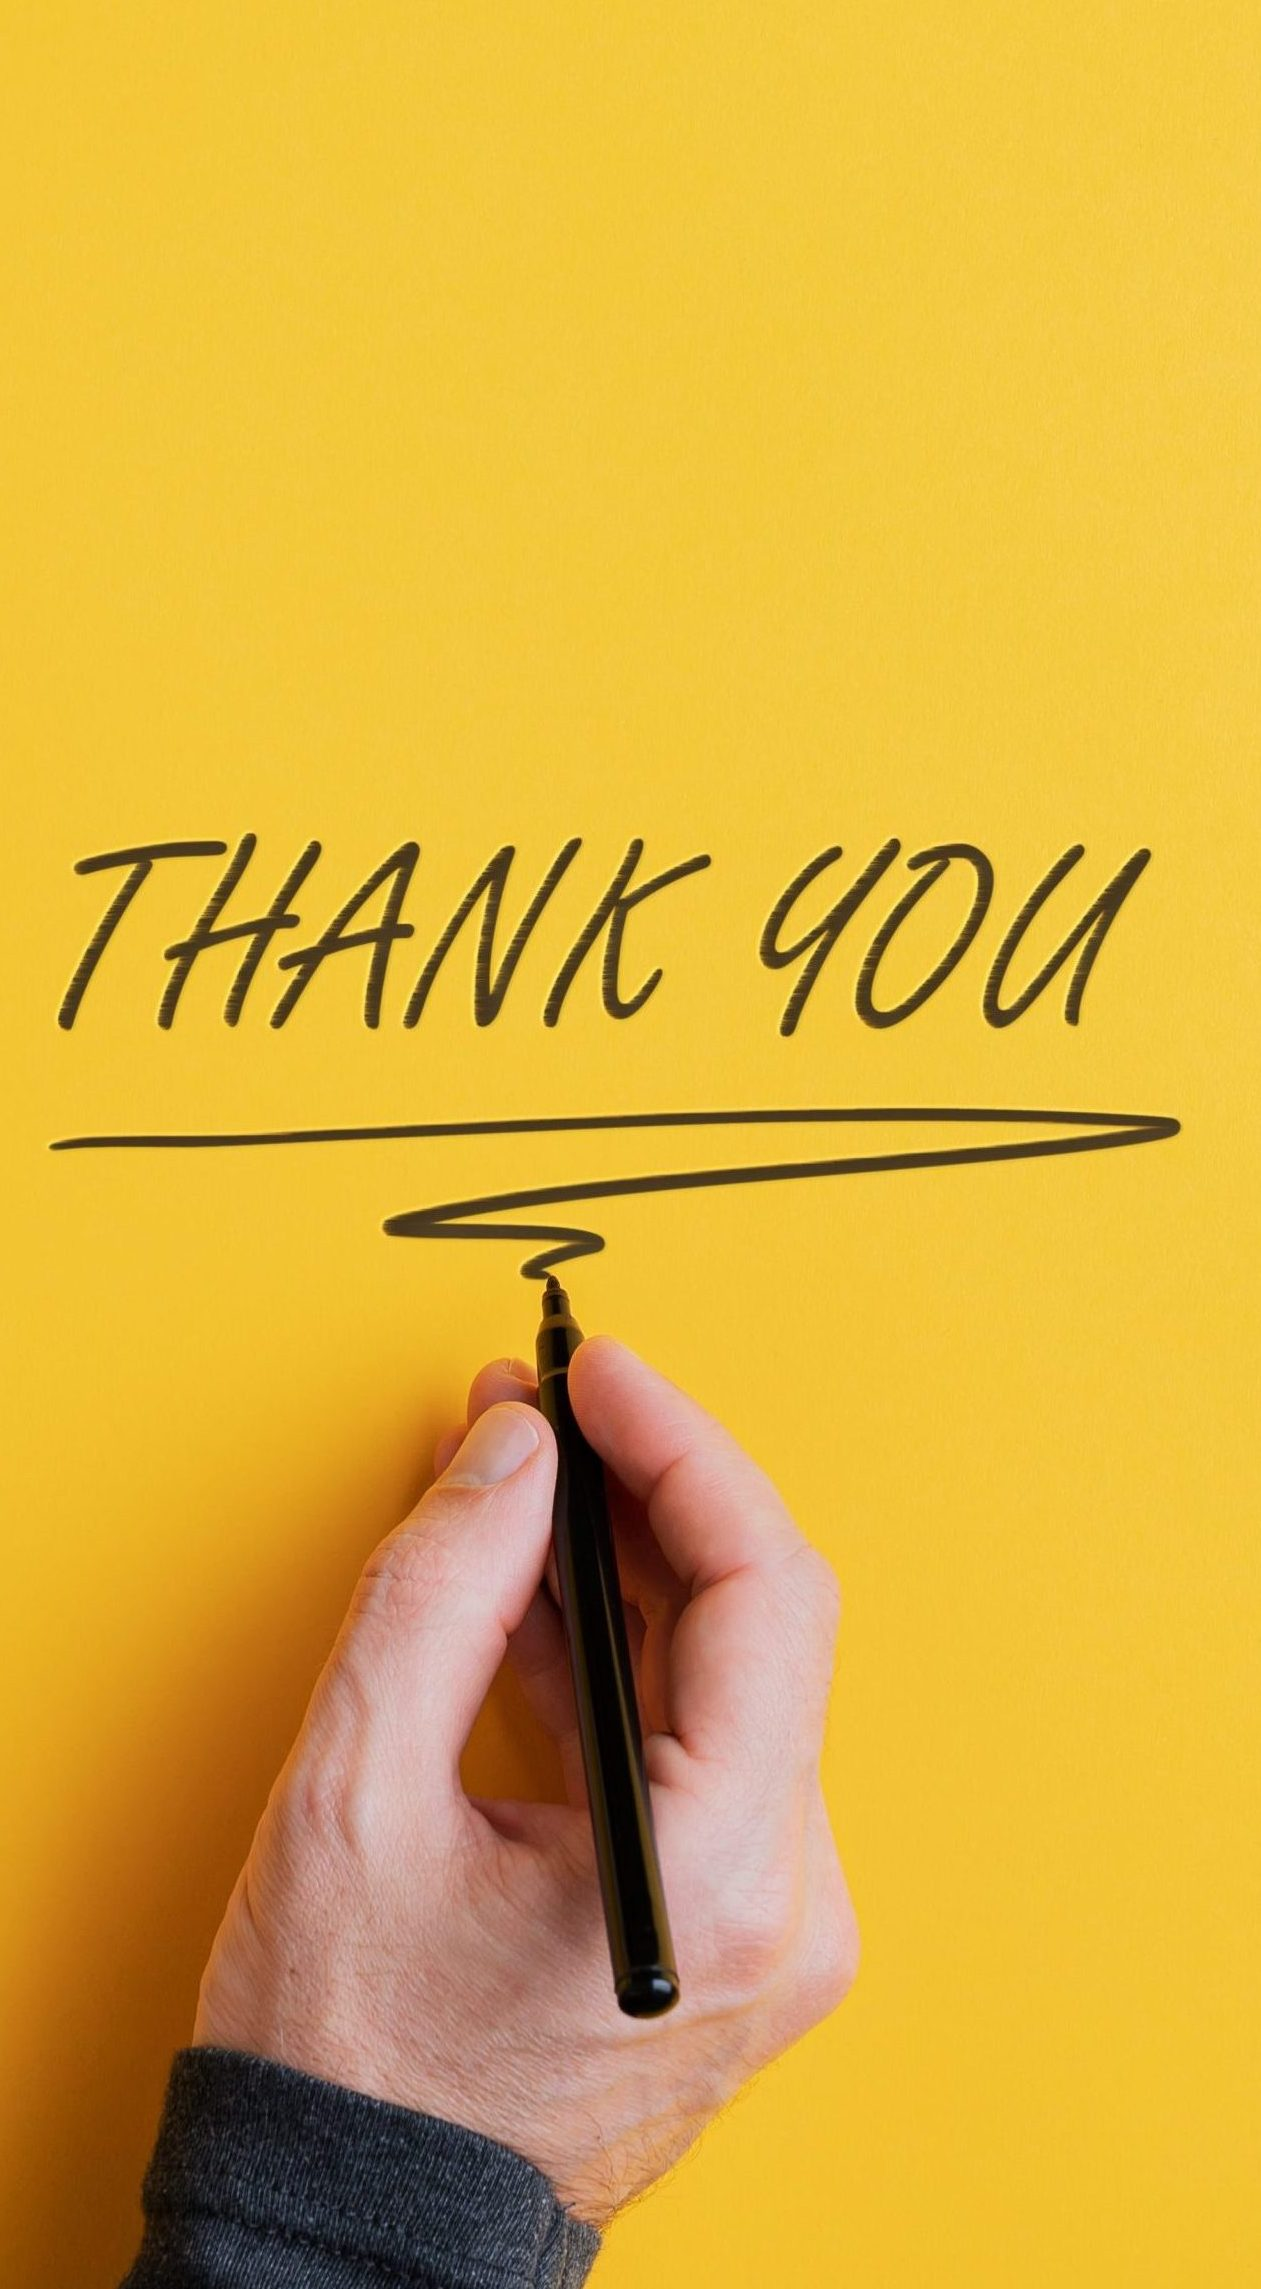 Male hand writing a Thank you sign with black marker on a yellow background sharing gratitude in difficult times